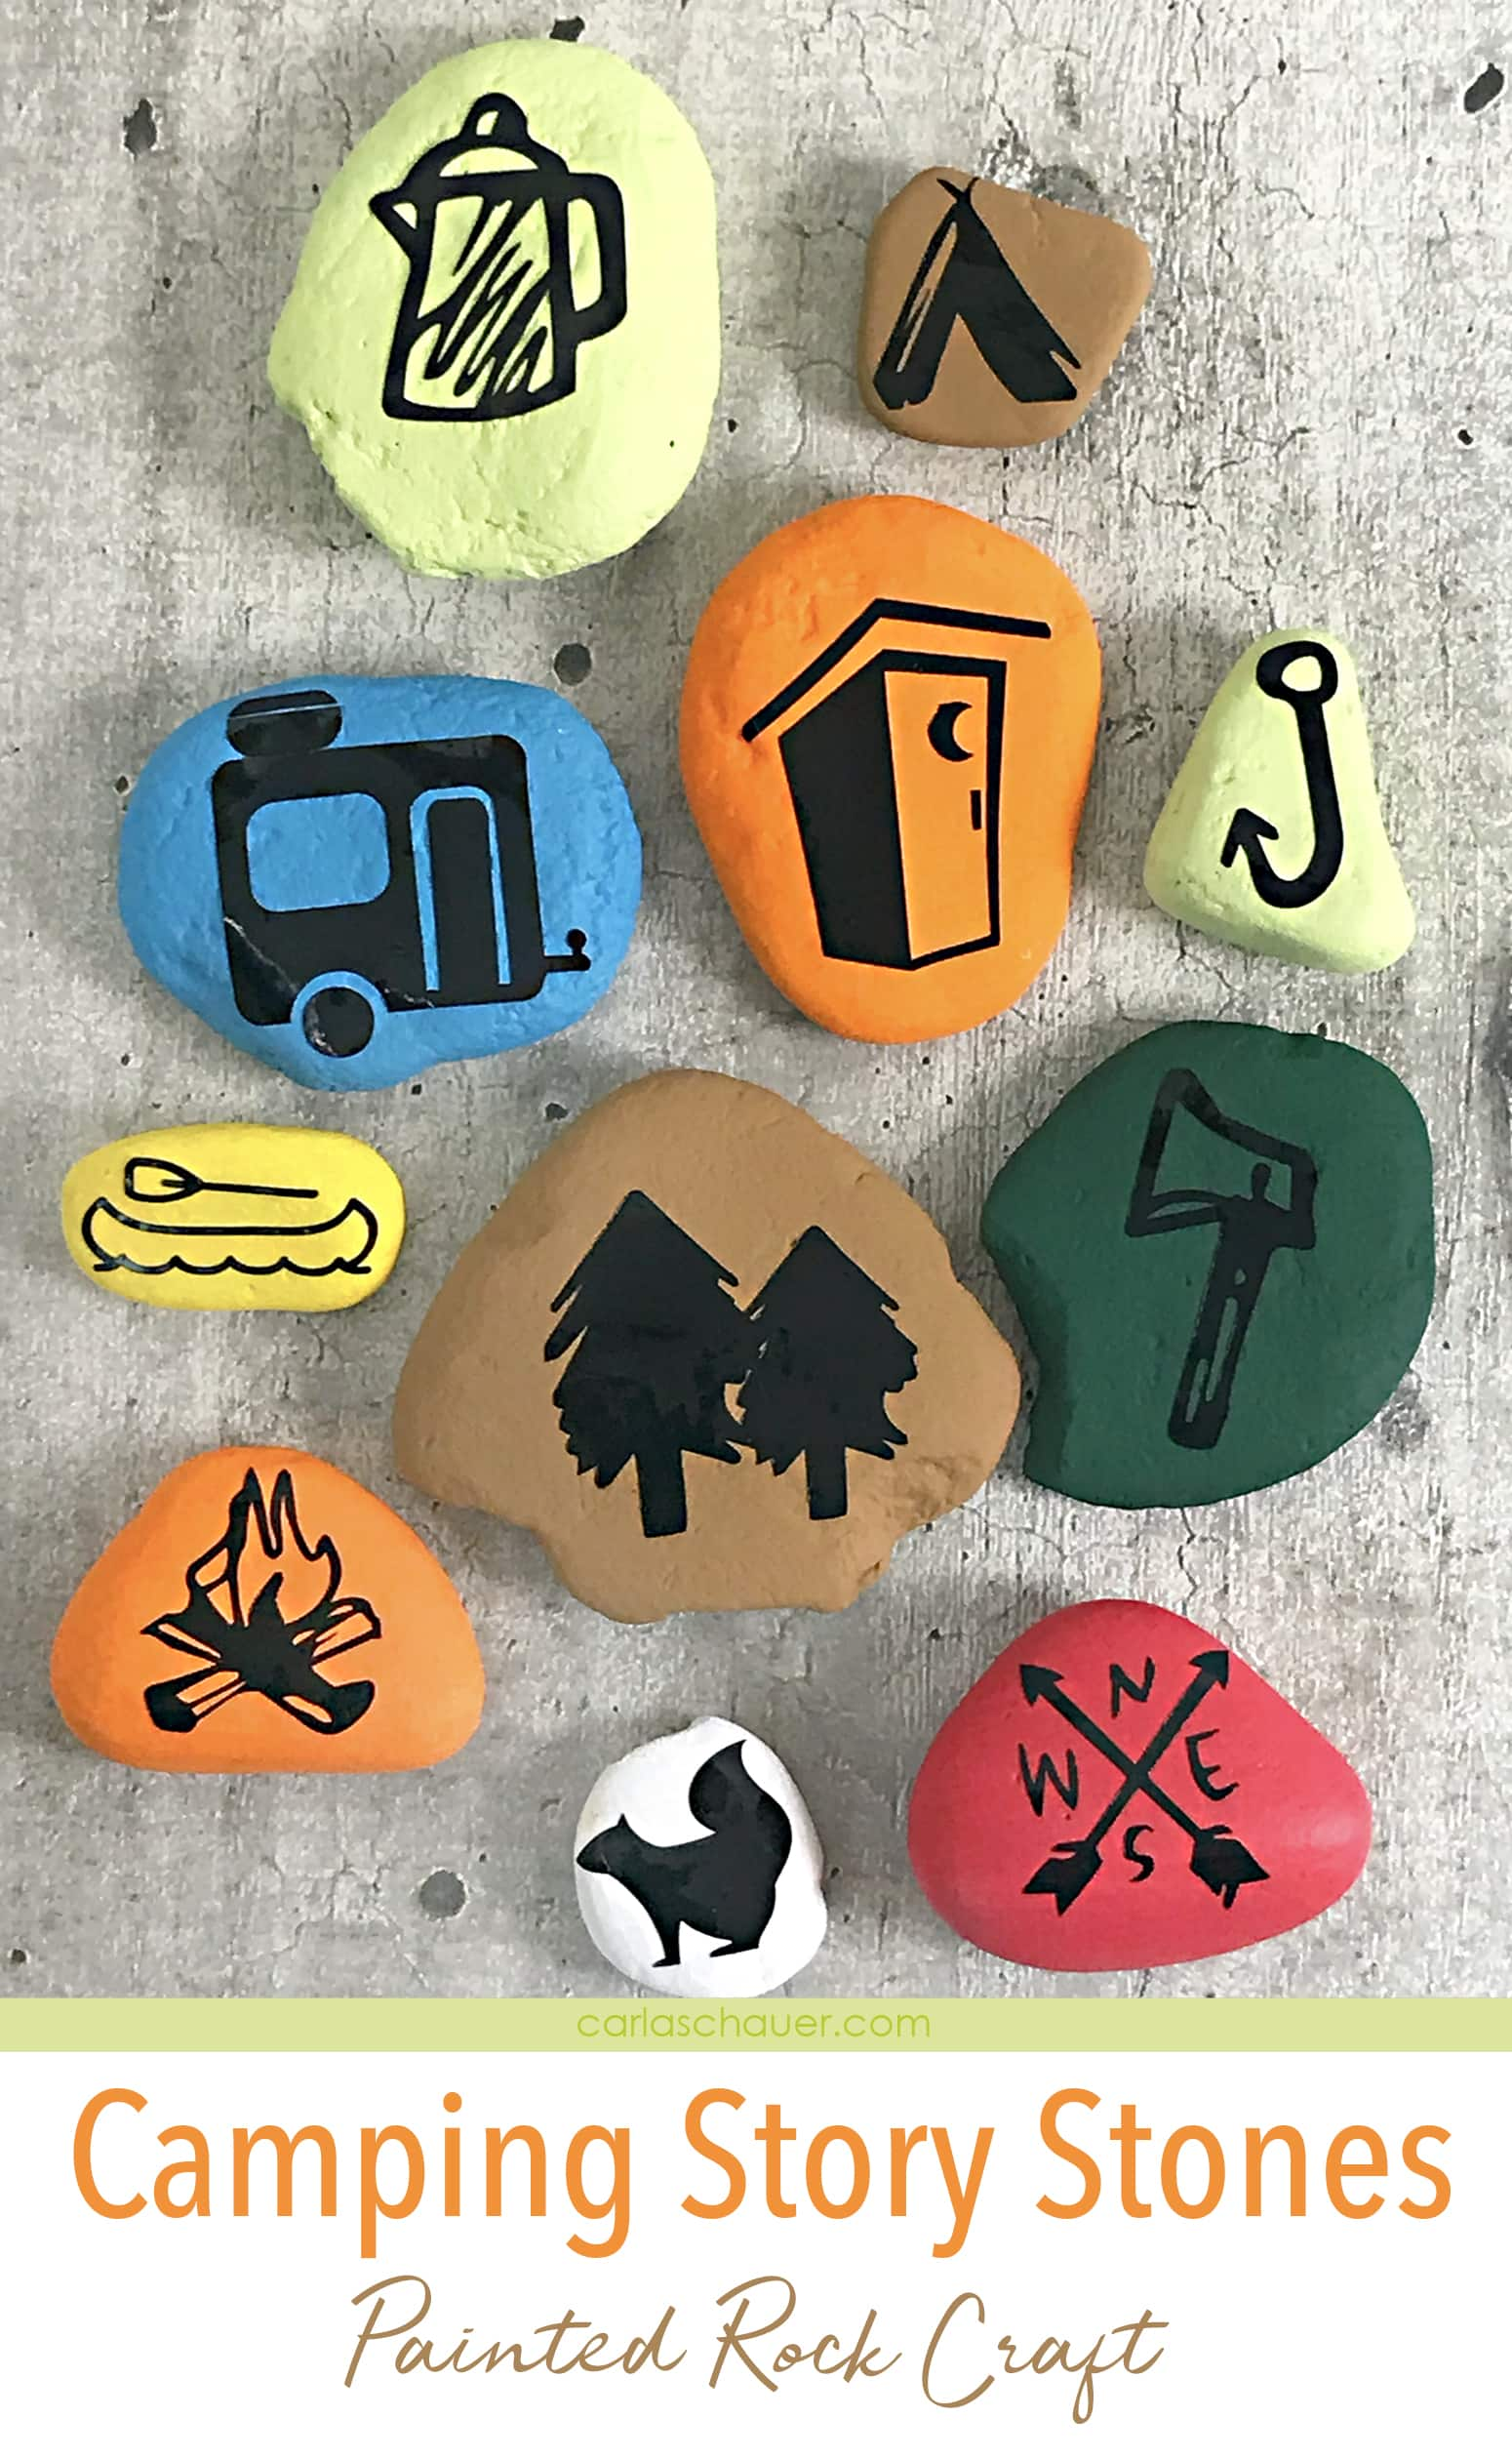 Colorful painted rock camping story stones.